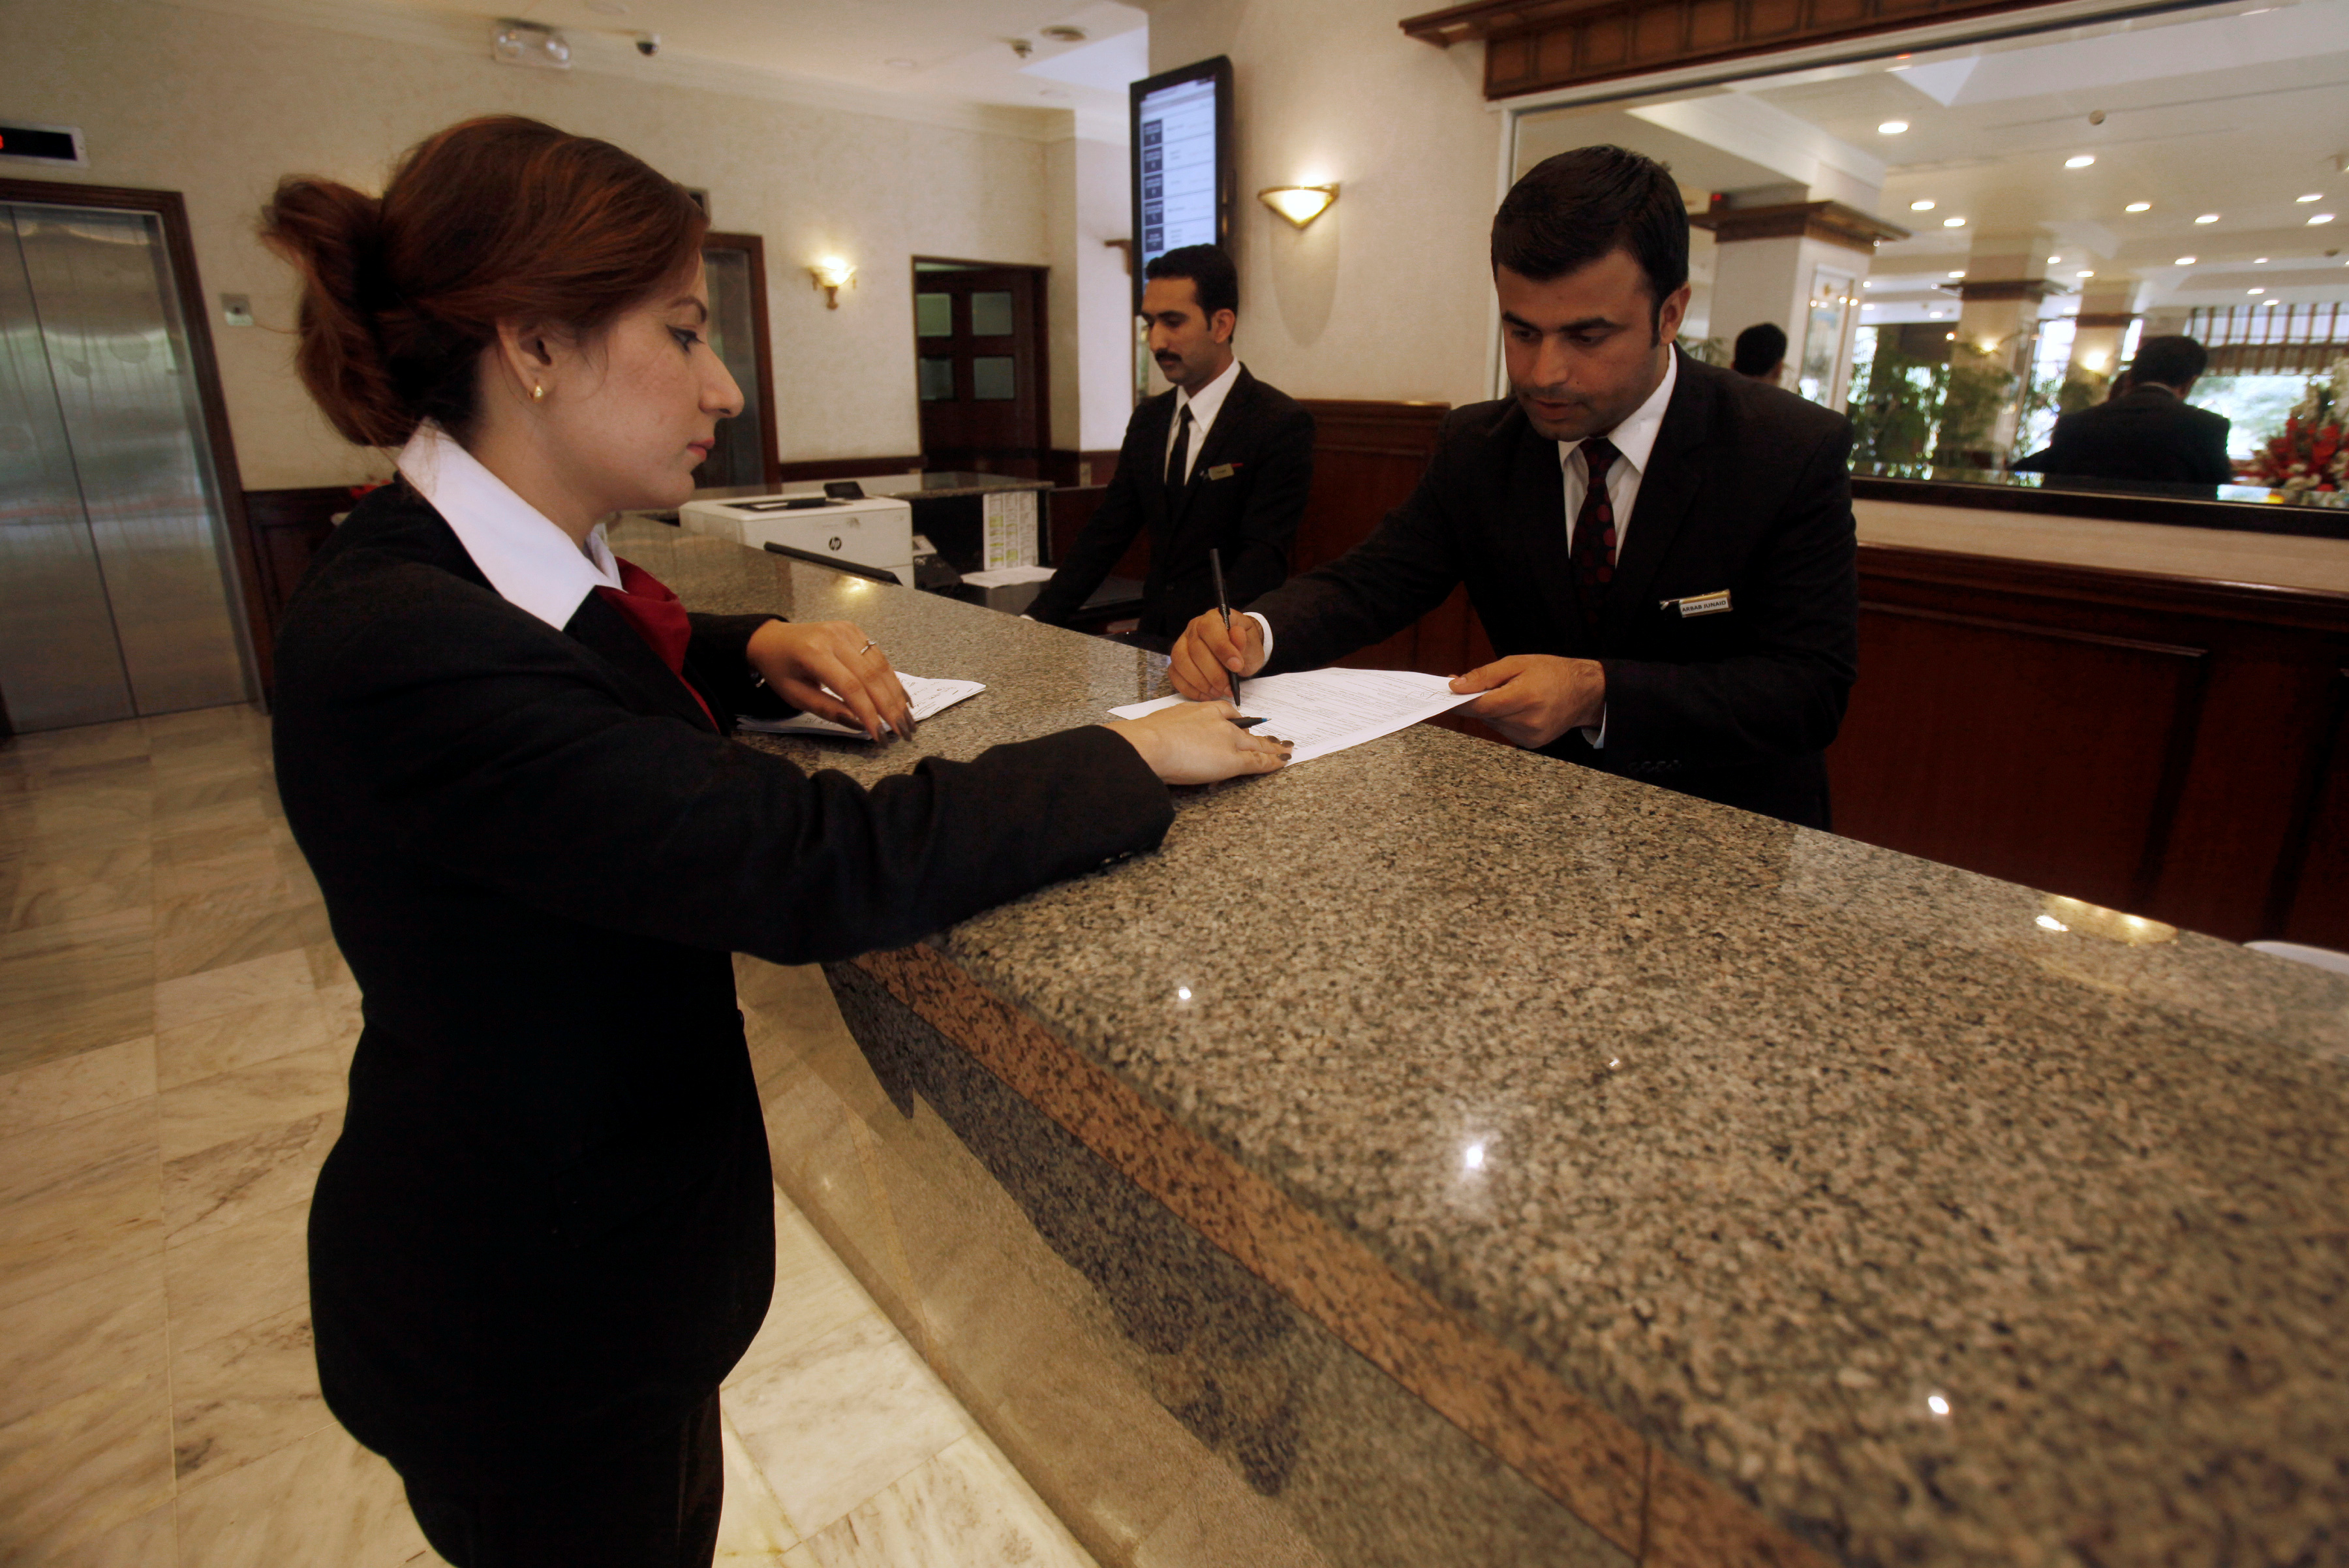 The reception desk staff is seen at the Pearl Continental hotel in Peshawar, Pakistan April 10, 2018. REUTERS/Fayaz Aziz